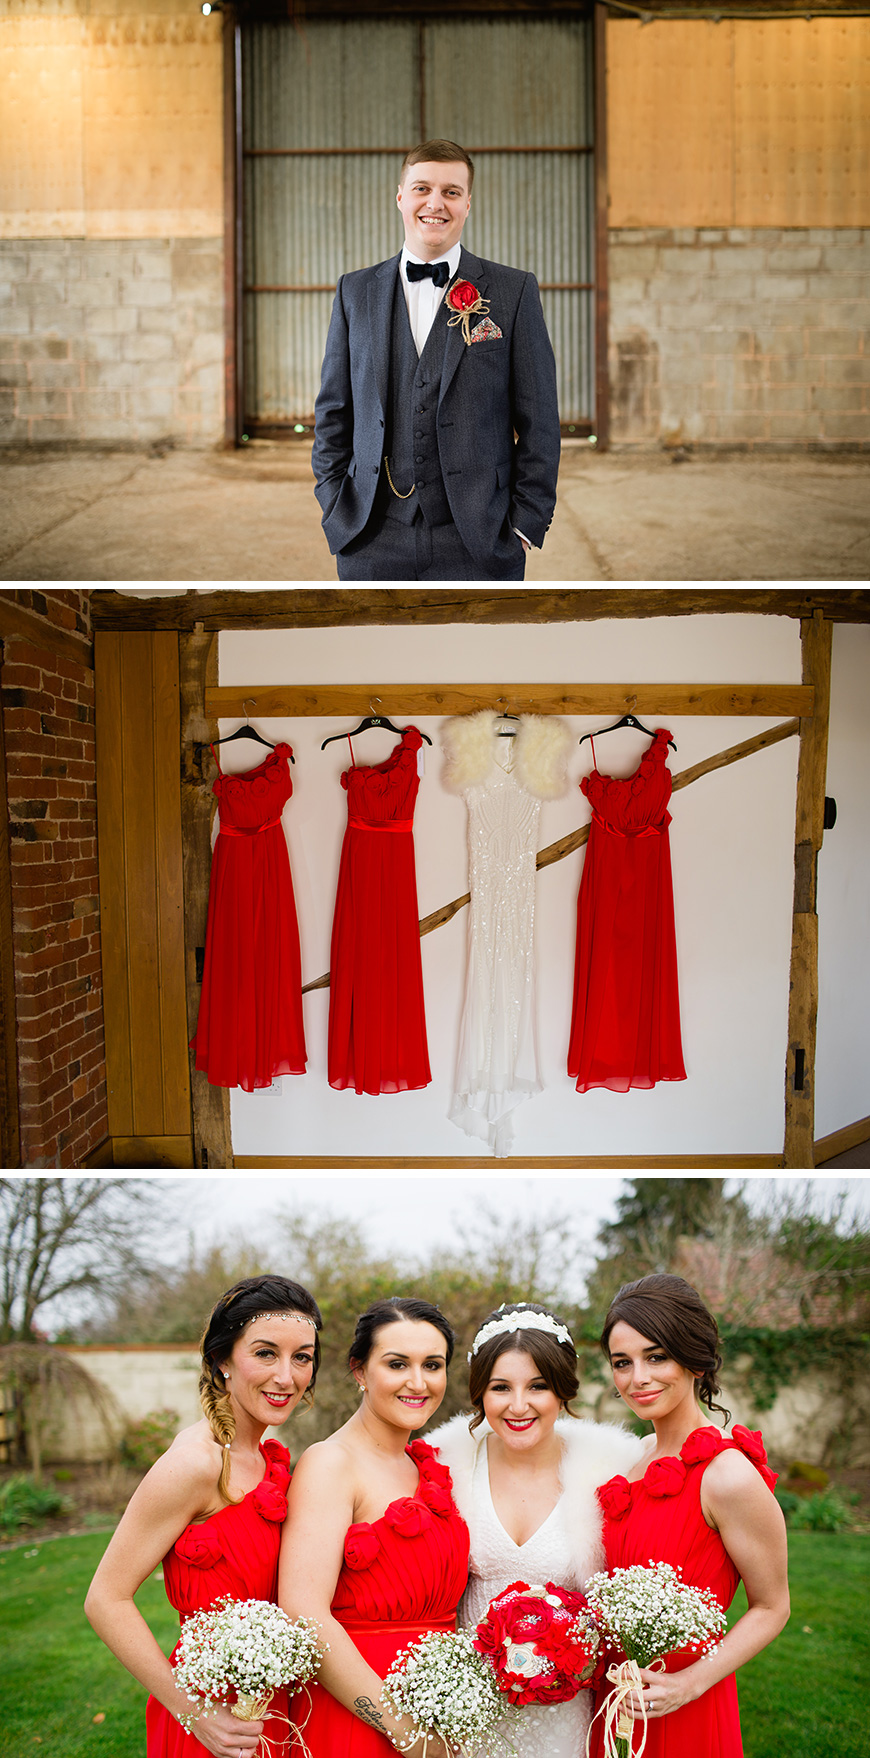 A Perfectly Personalised Wedding Day at Curradine Barns - Outfits | CHWV